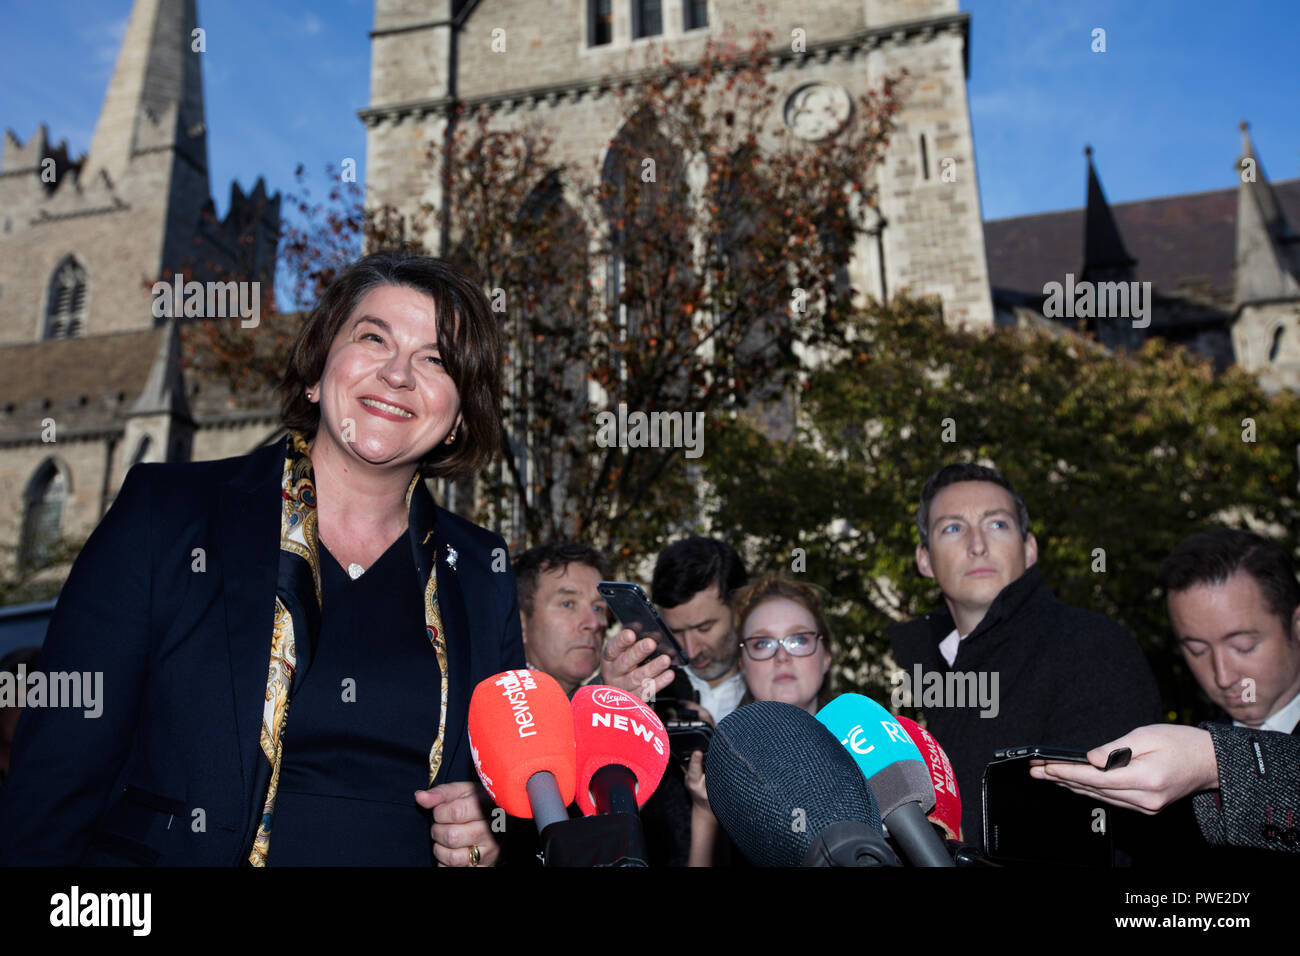 Dublin, Ireland. 15th Oct 2018.  Arlene Foster in Dublin. Democratic Unionist Party leader Arlene Foster gives a news conference outside St Patricks Church of Ireland Cathedral in Dublin after her meeting with Fianna Fail Leader Micheal Martin on Brexit. Photo: Eamonn Farrell/RollingNews.ie Credit: RollingNews.ie/Alamy Live News - Stock Image